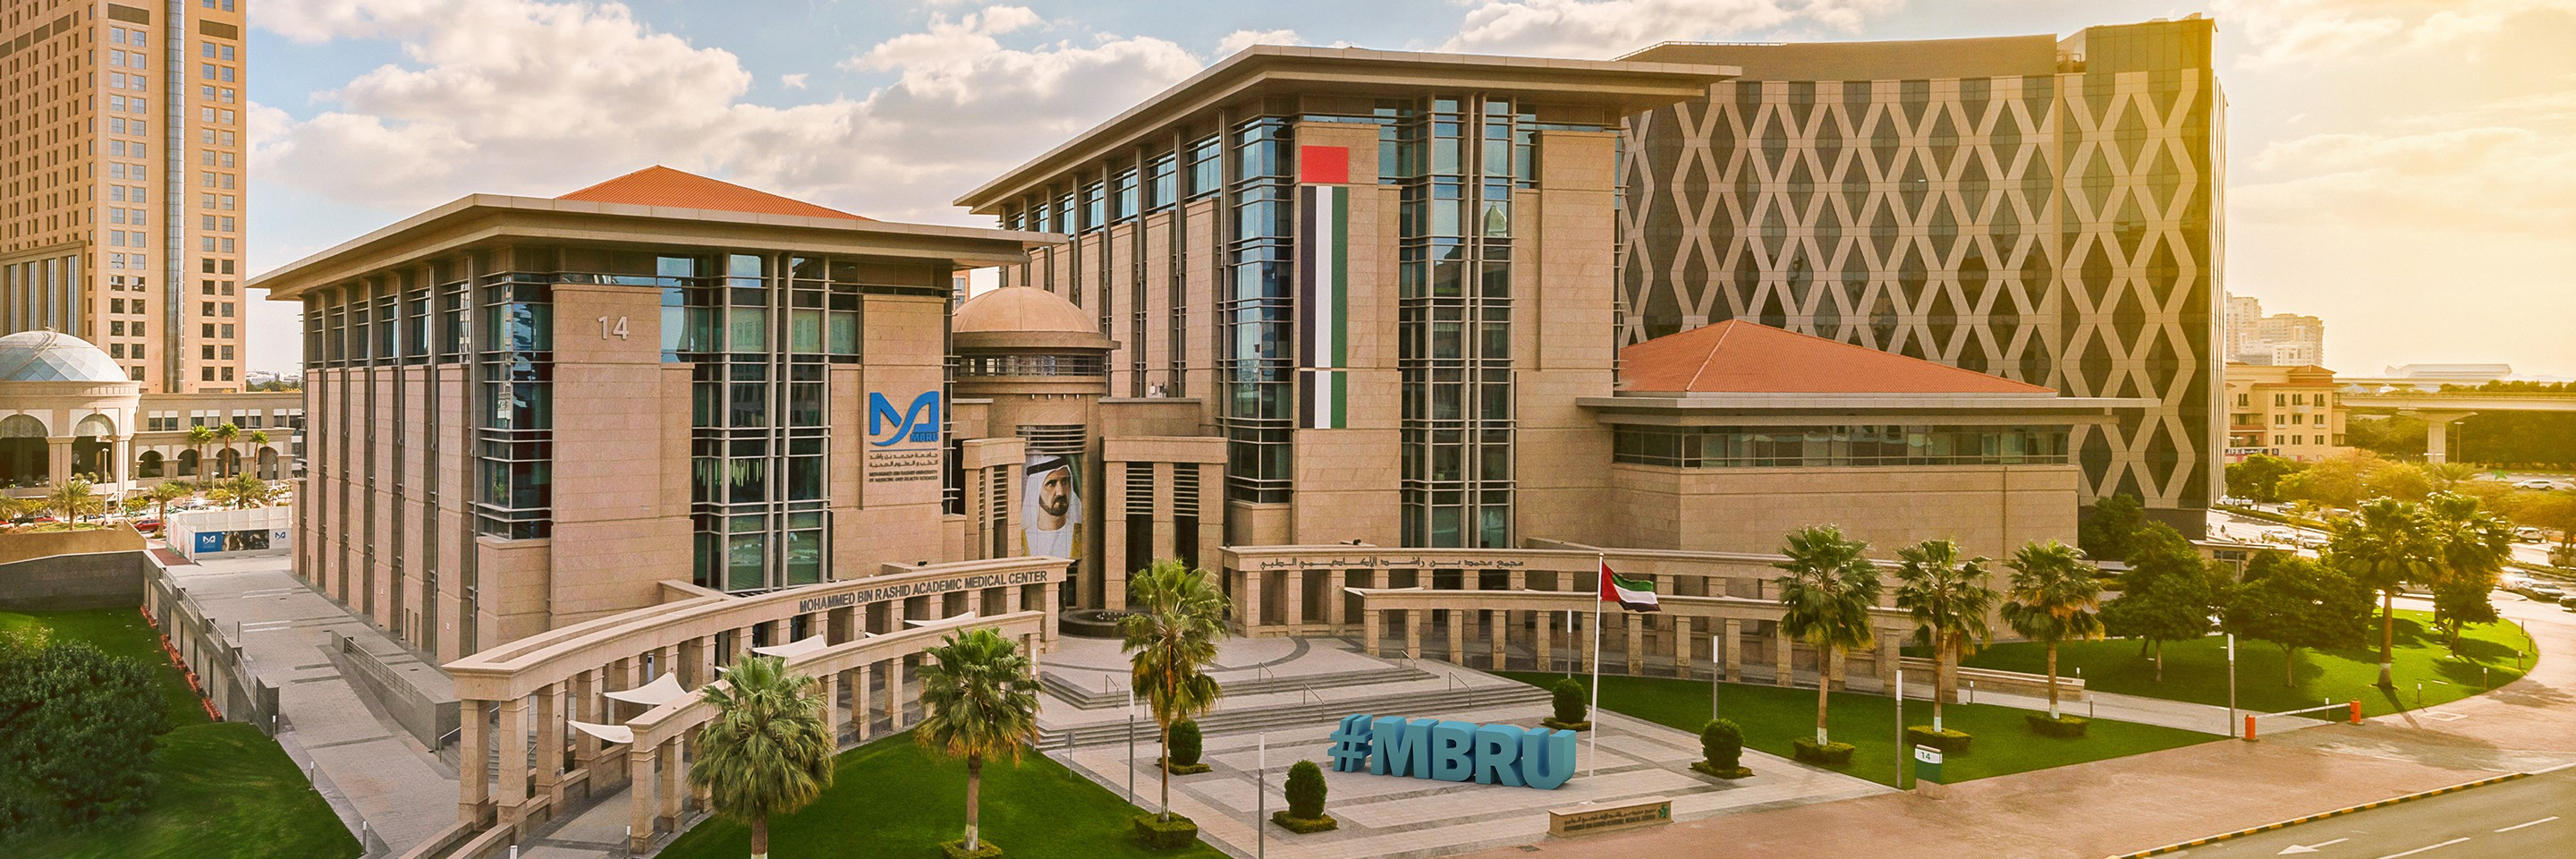 Mohammed Bin Rashid University of Medicine and Health Sciences (MBRU) | LinkedIn